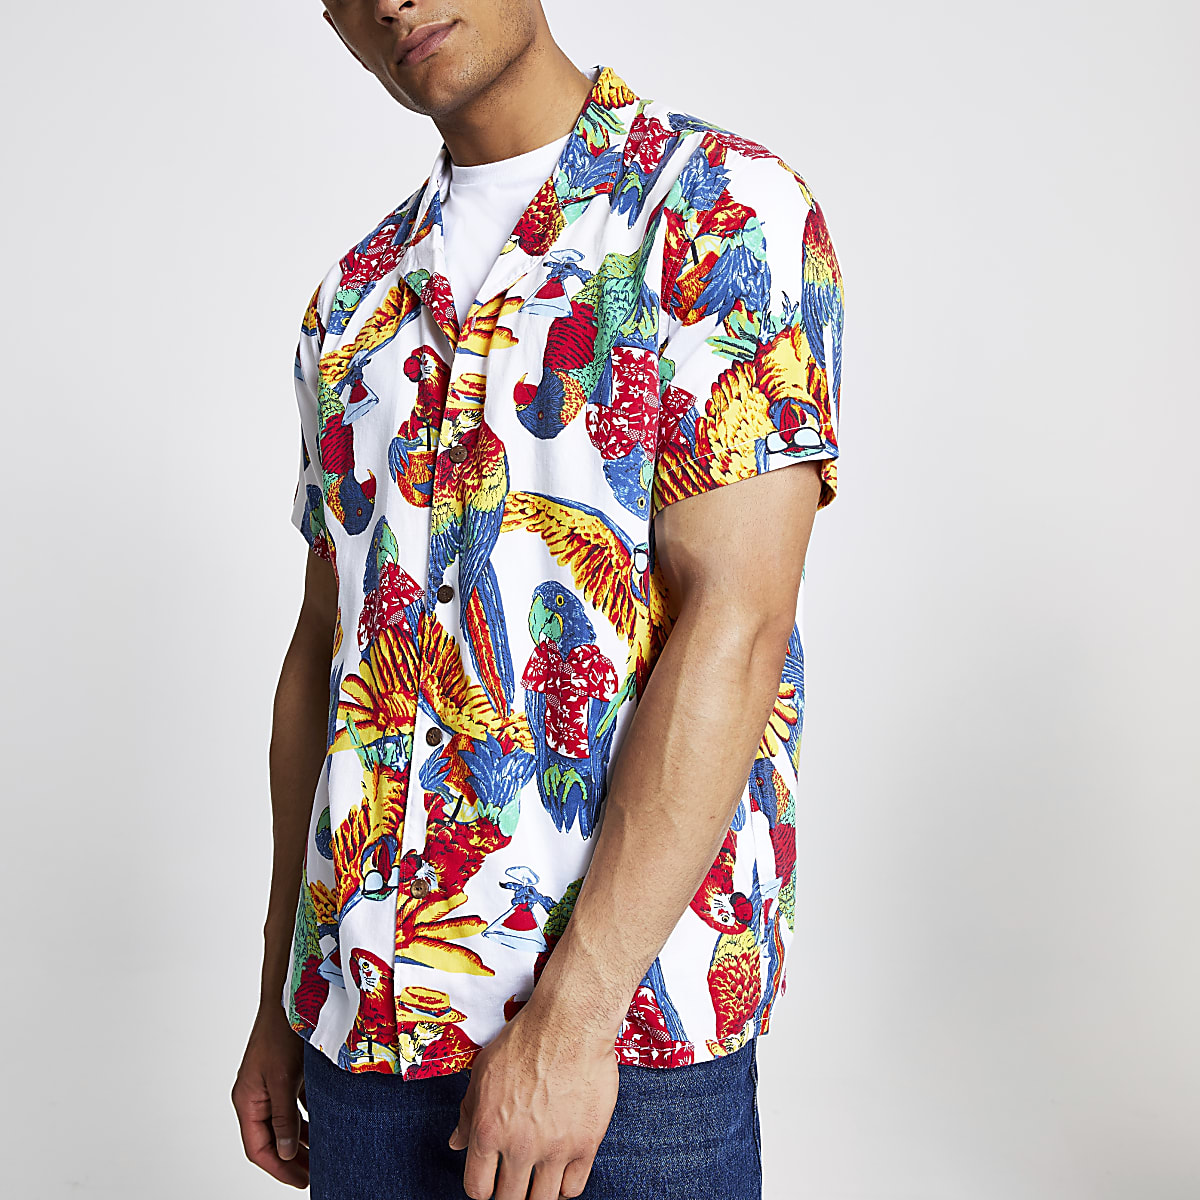 Levi's white parrot short sleeve shirt